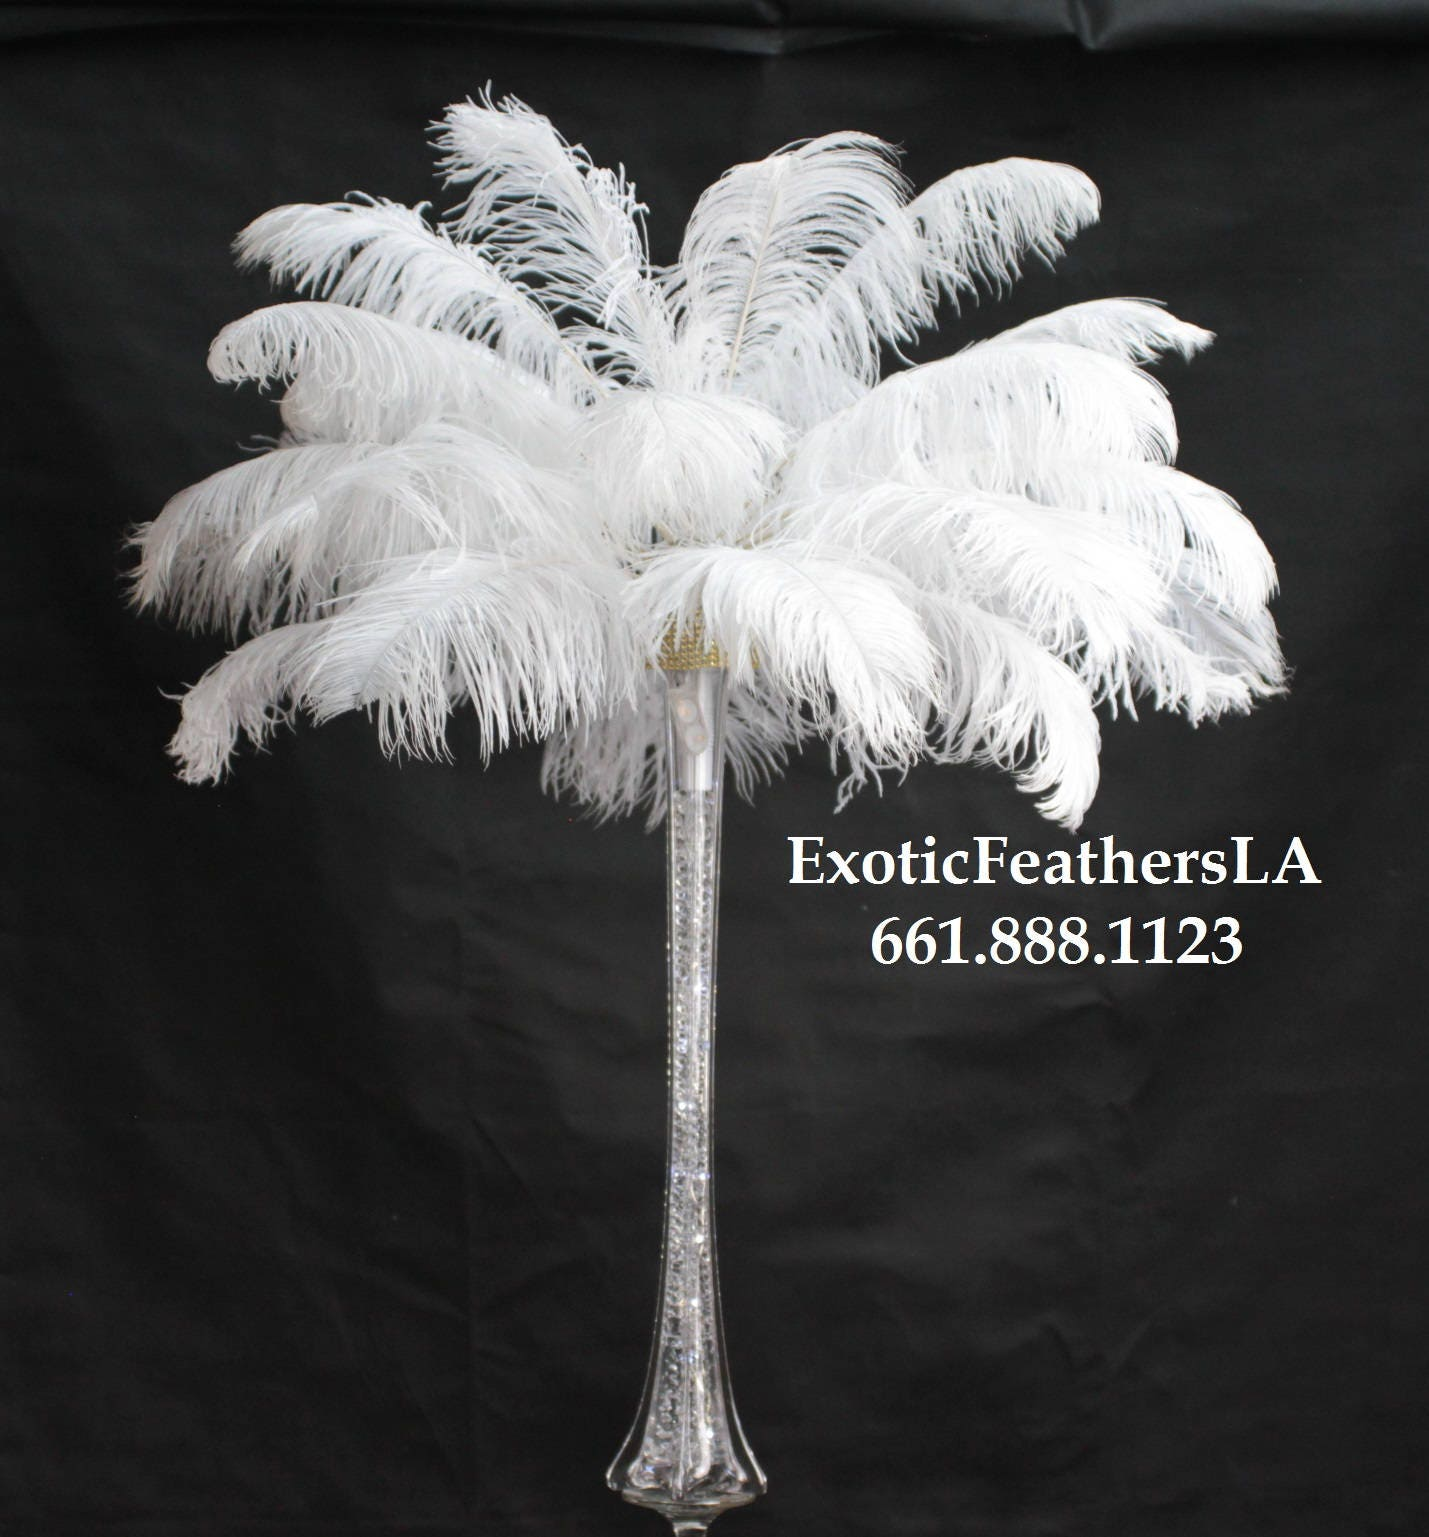 Special sale u s a pcs white ostrich feathers